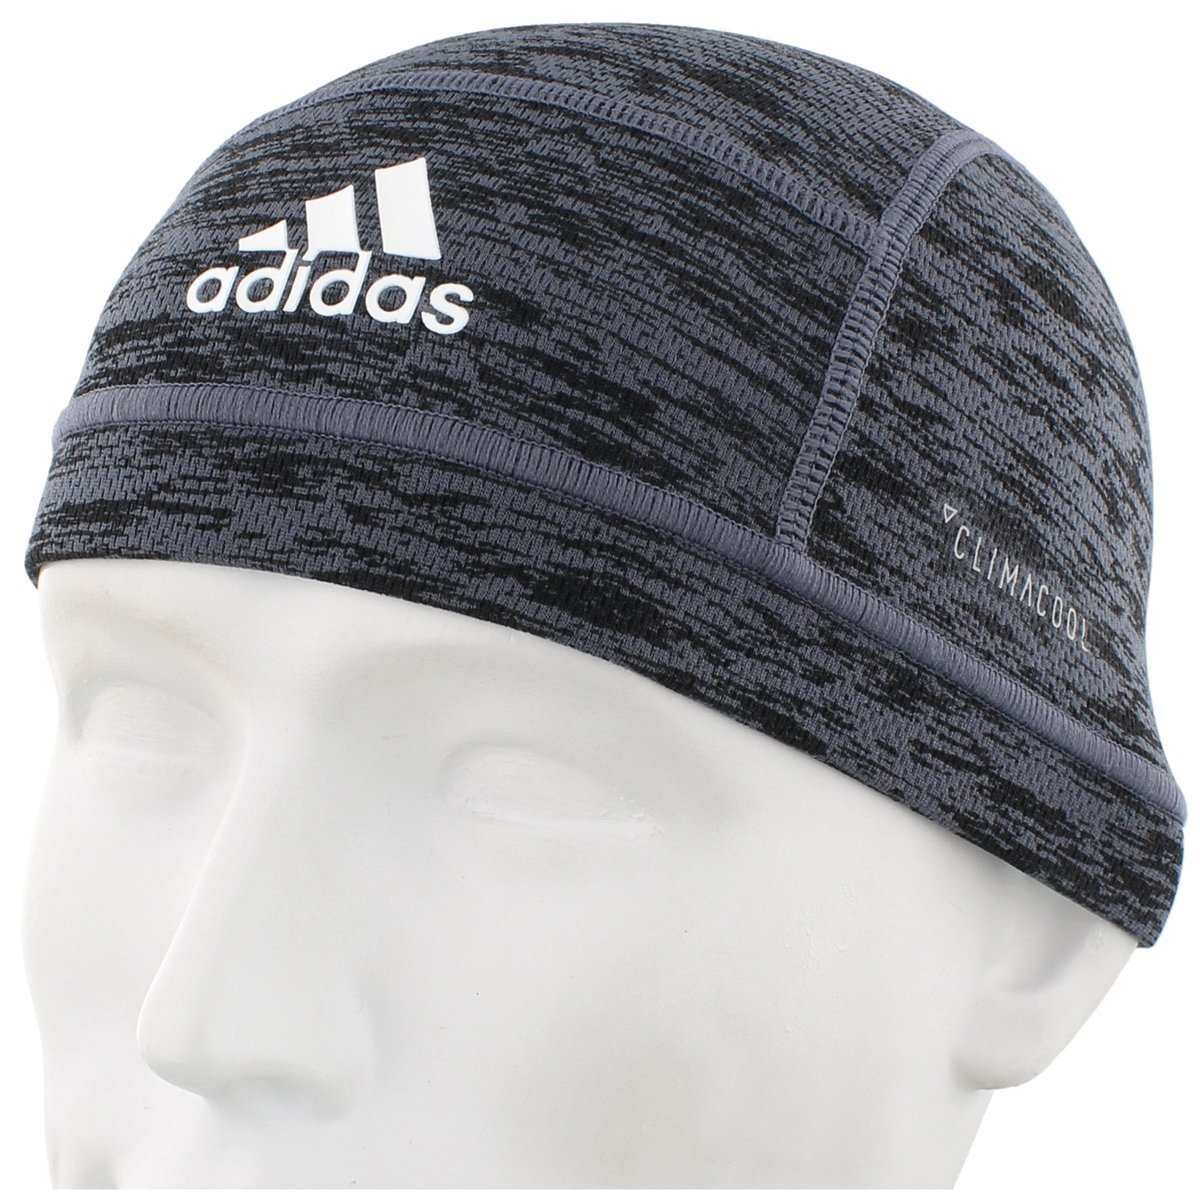 adidas Unisex Football Skull Cap, Black Spacedye Print, One Size